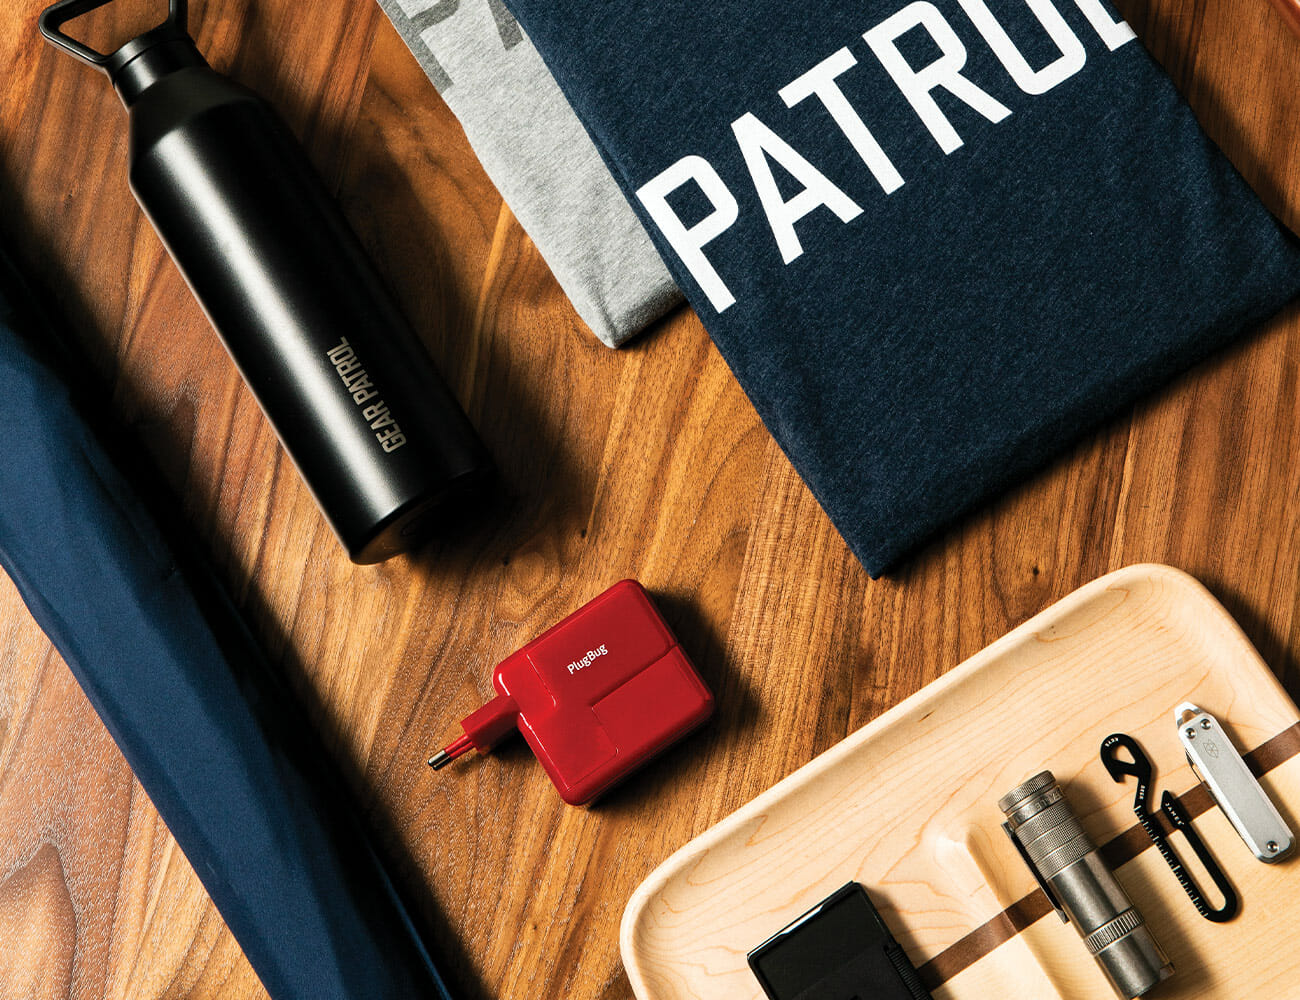 Stock Up With 20% Off at the Gear Patrol Store